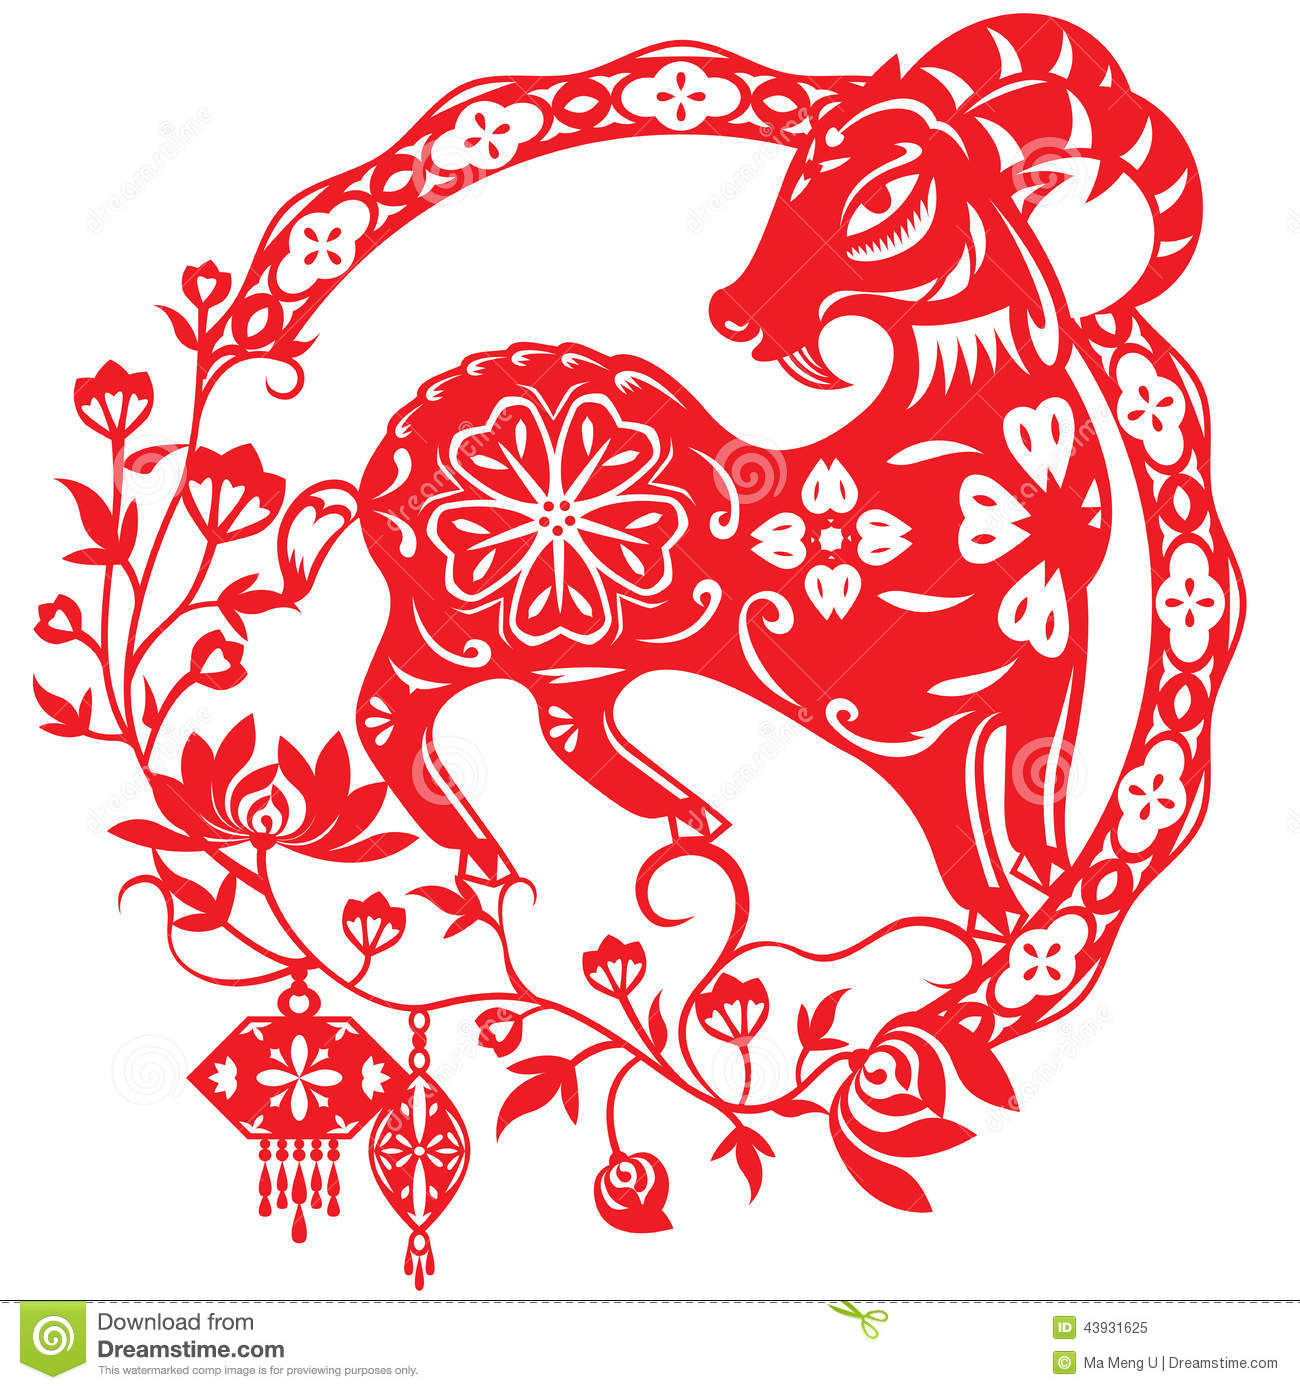 Chinese Calendar Illustration : Chinese year of lucky sheep lamb stock vector